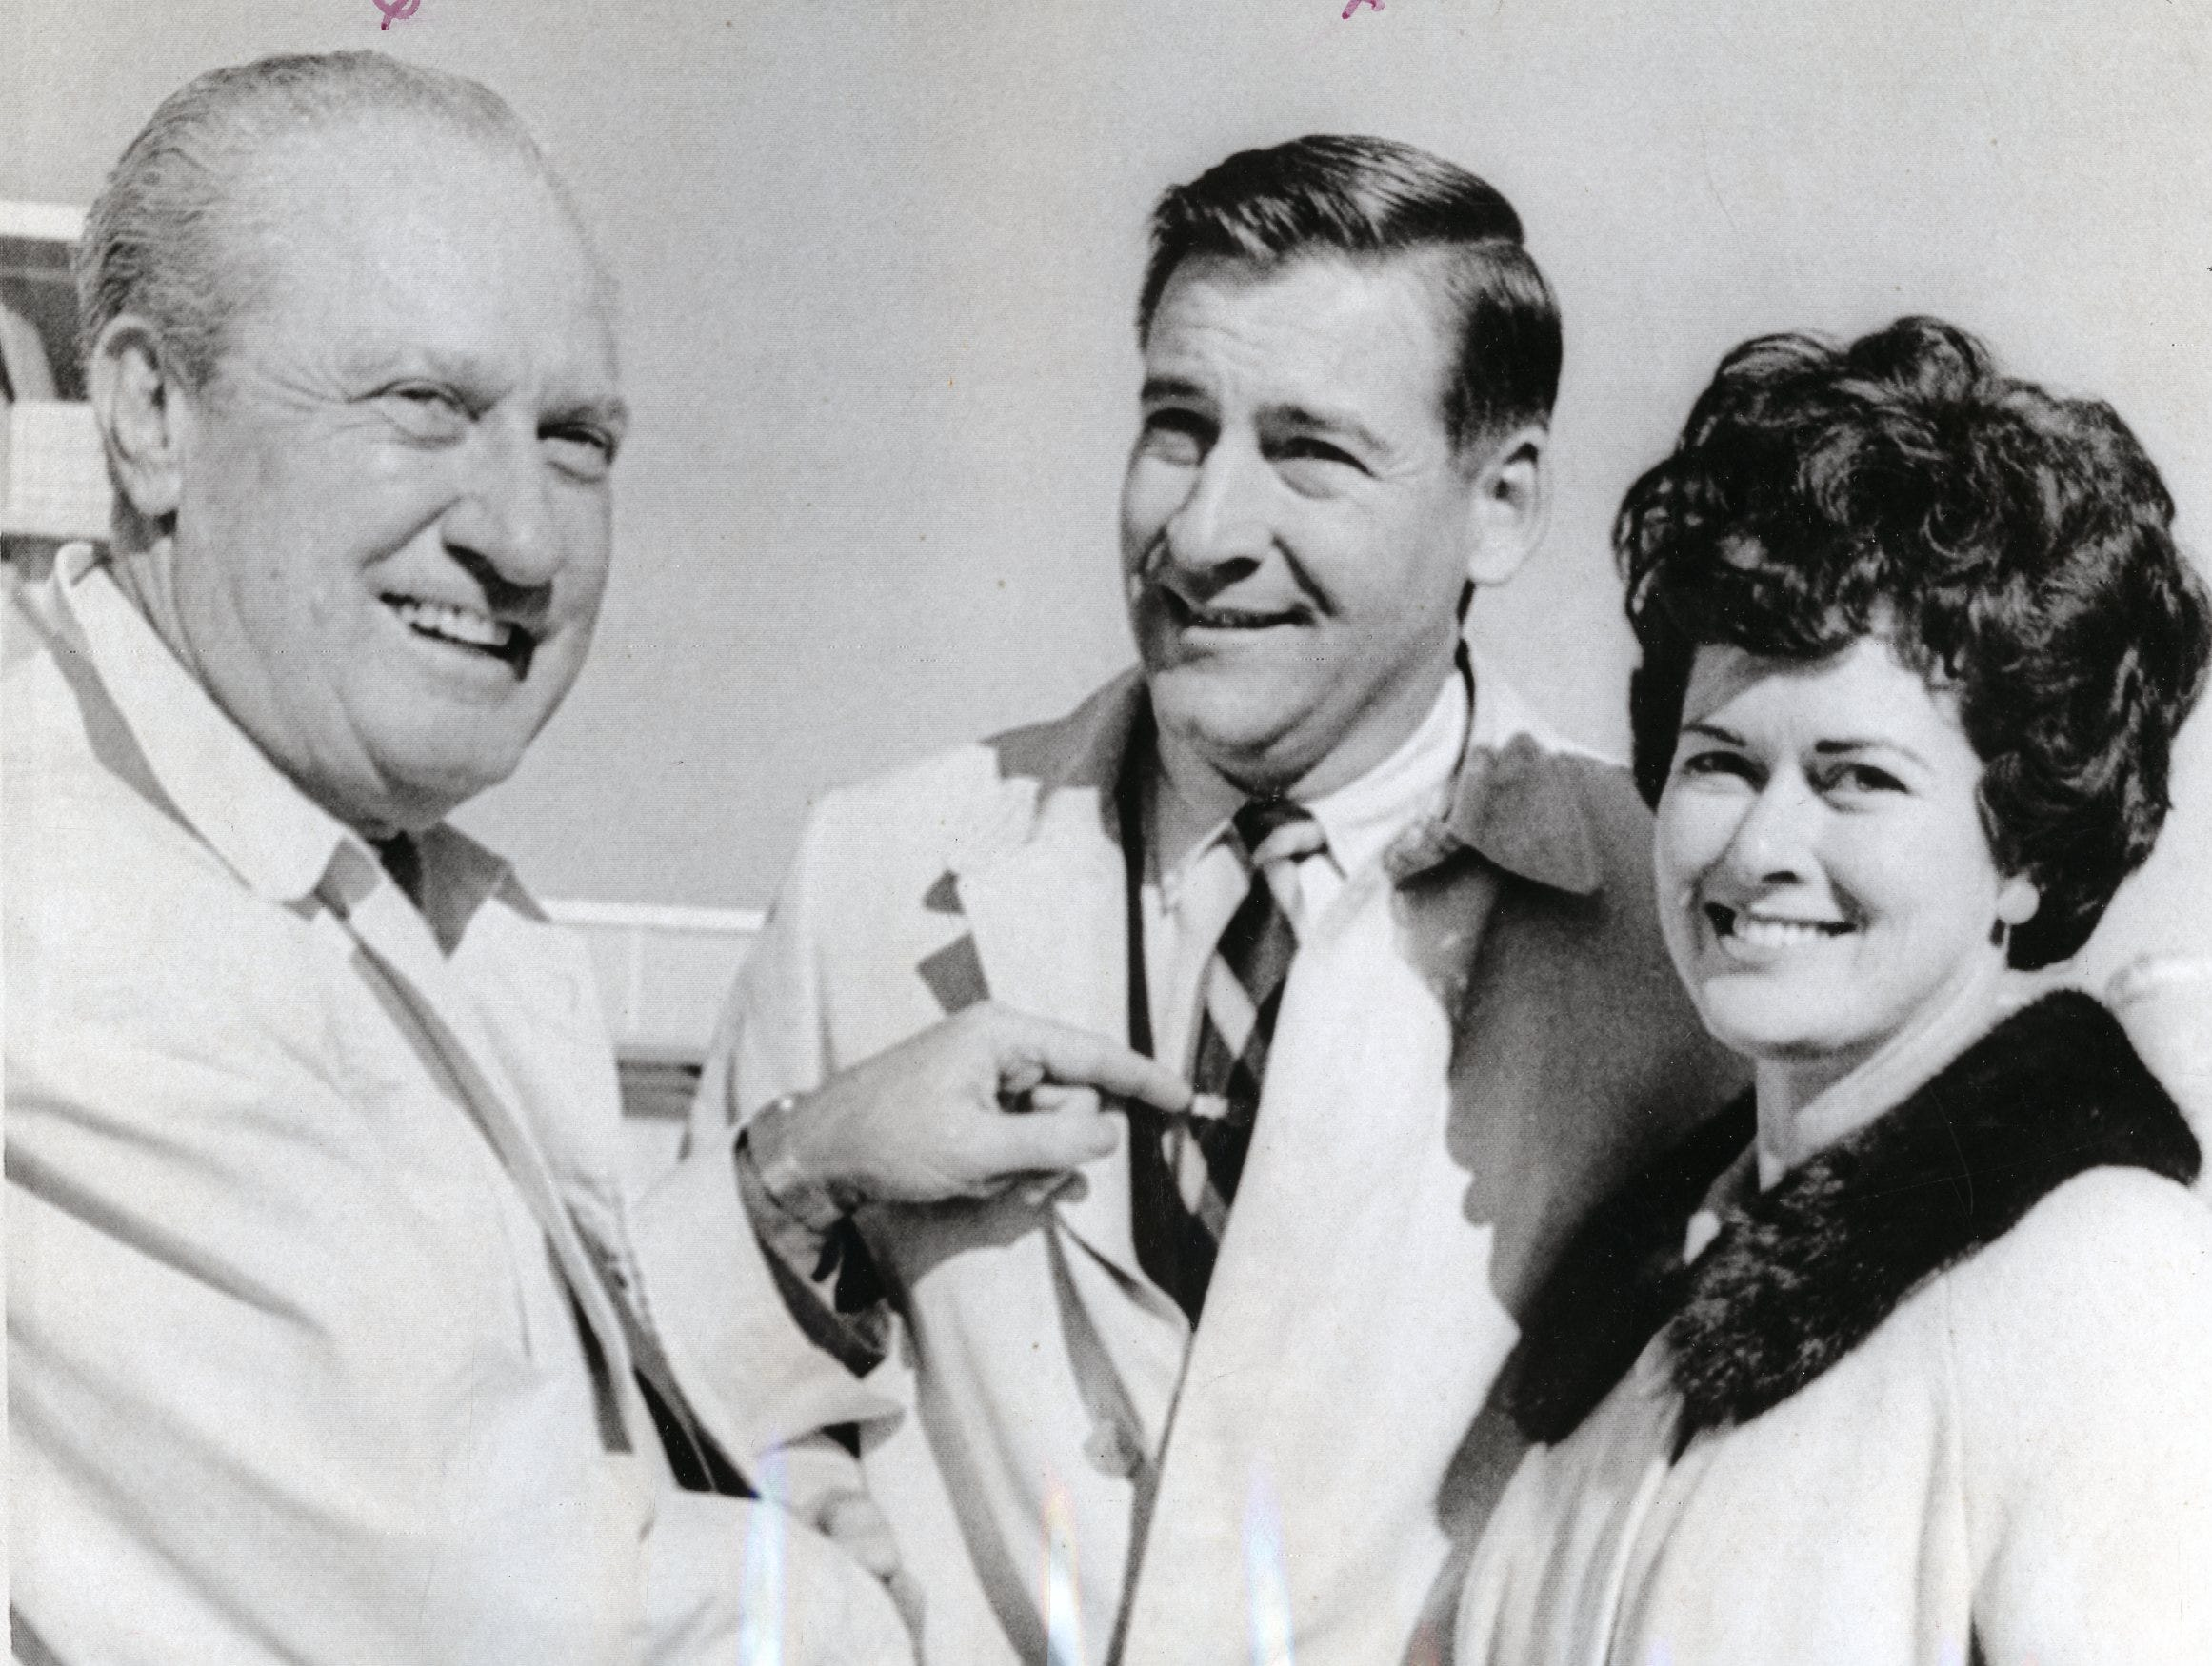 Dallas city councilman Jack McKinney presents Doug and JoAnne Dickey a key to the city of Dallas upon their arrival at Dallas Love Field for the Cotton Bowl. December, 1968